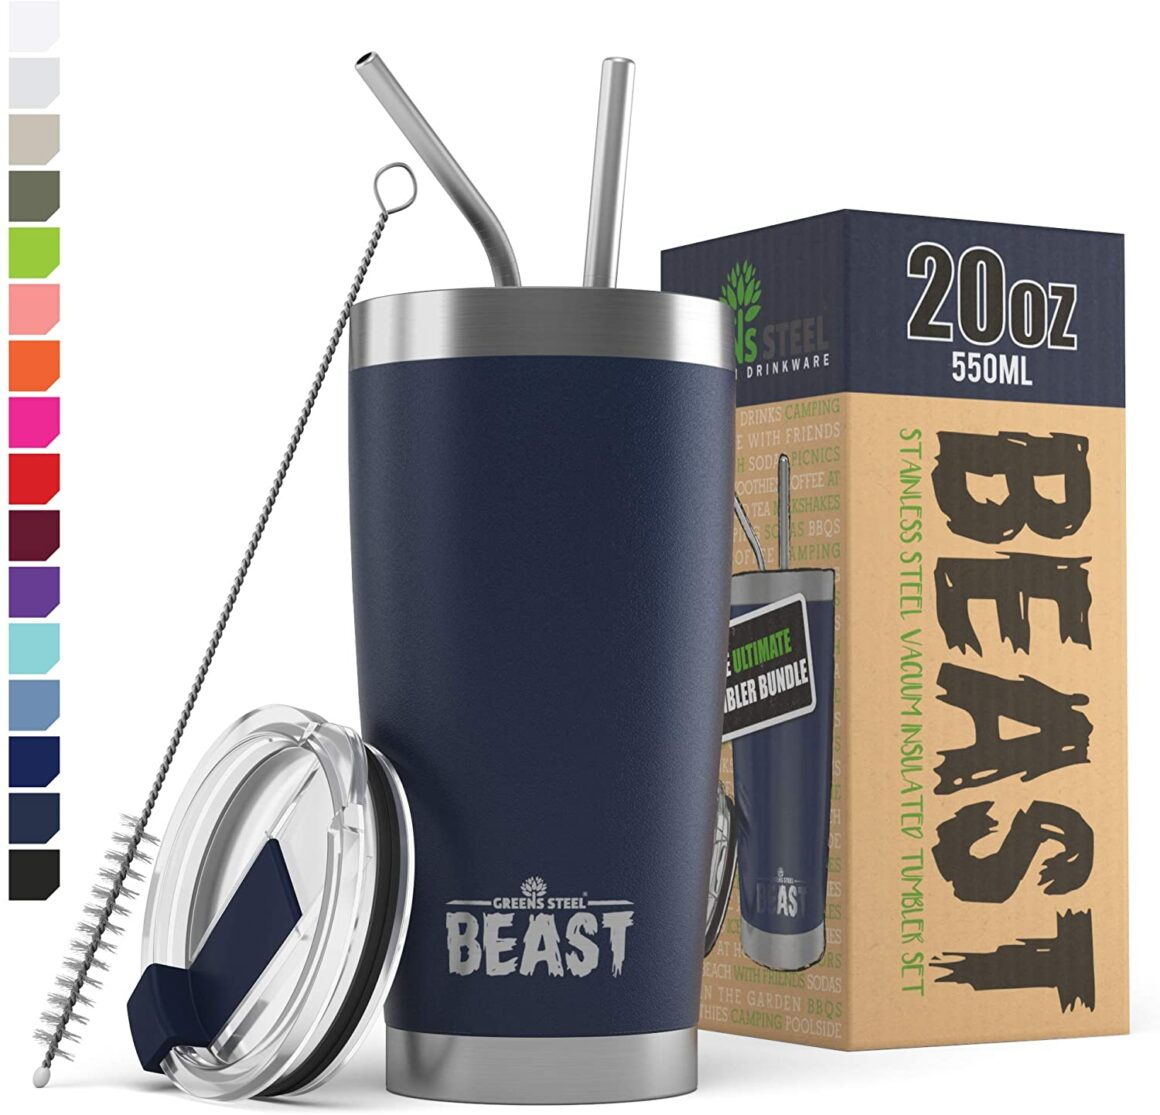 The BEAST Gift Bundle